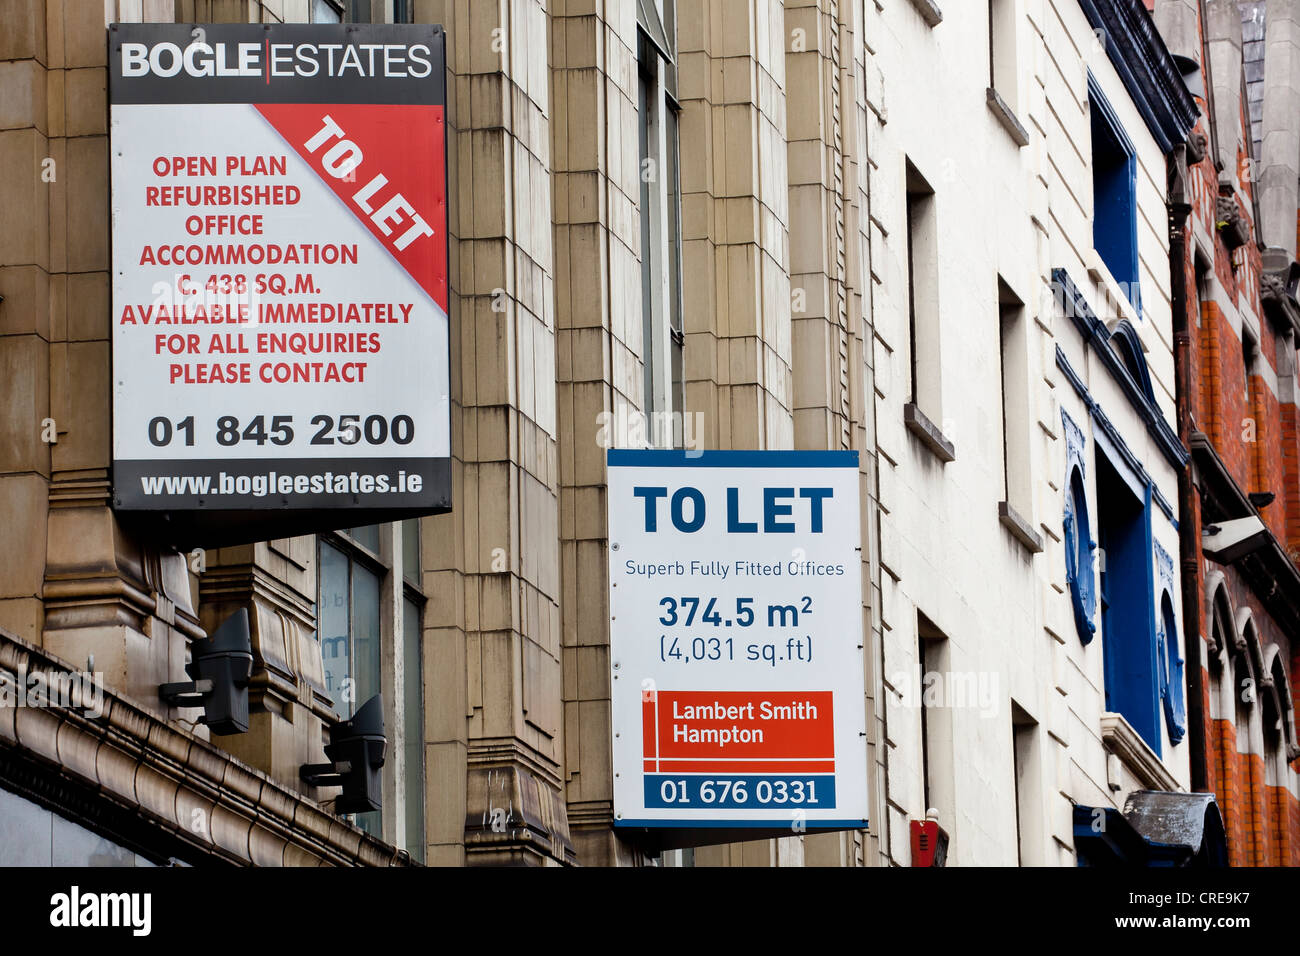 Dublin office space Heneghan Peng Signs For Offices To Let Rent Office Space In The Financial District Dublin Ireland Europe Agent Media Signs For Offices To Let Rent Office Space In The Financial Stock